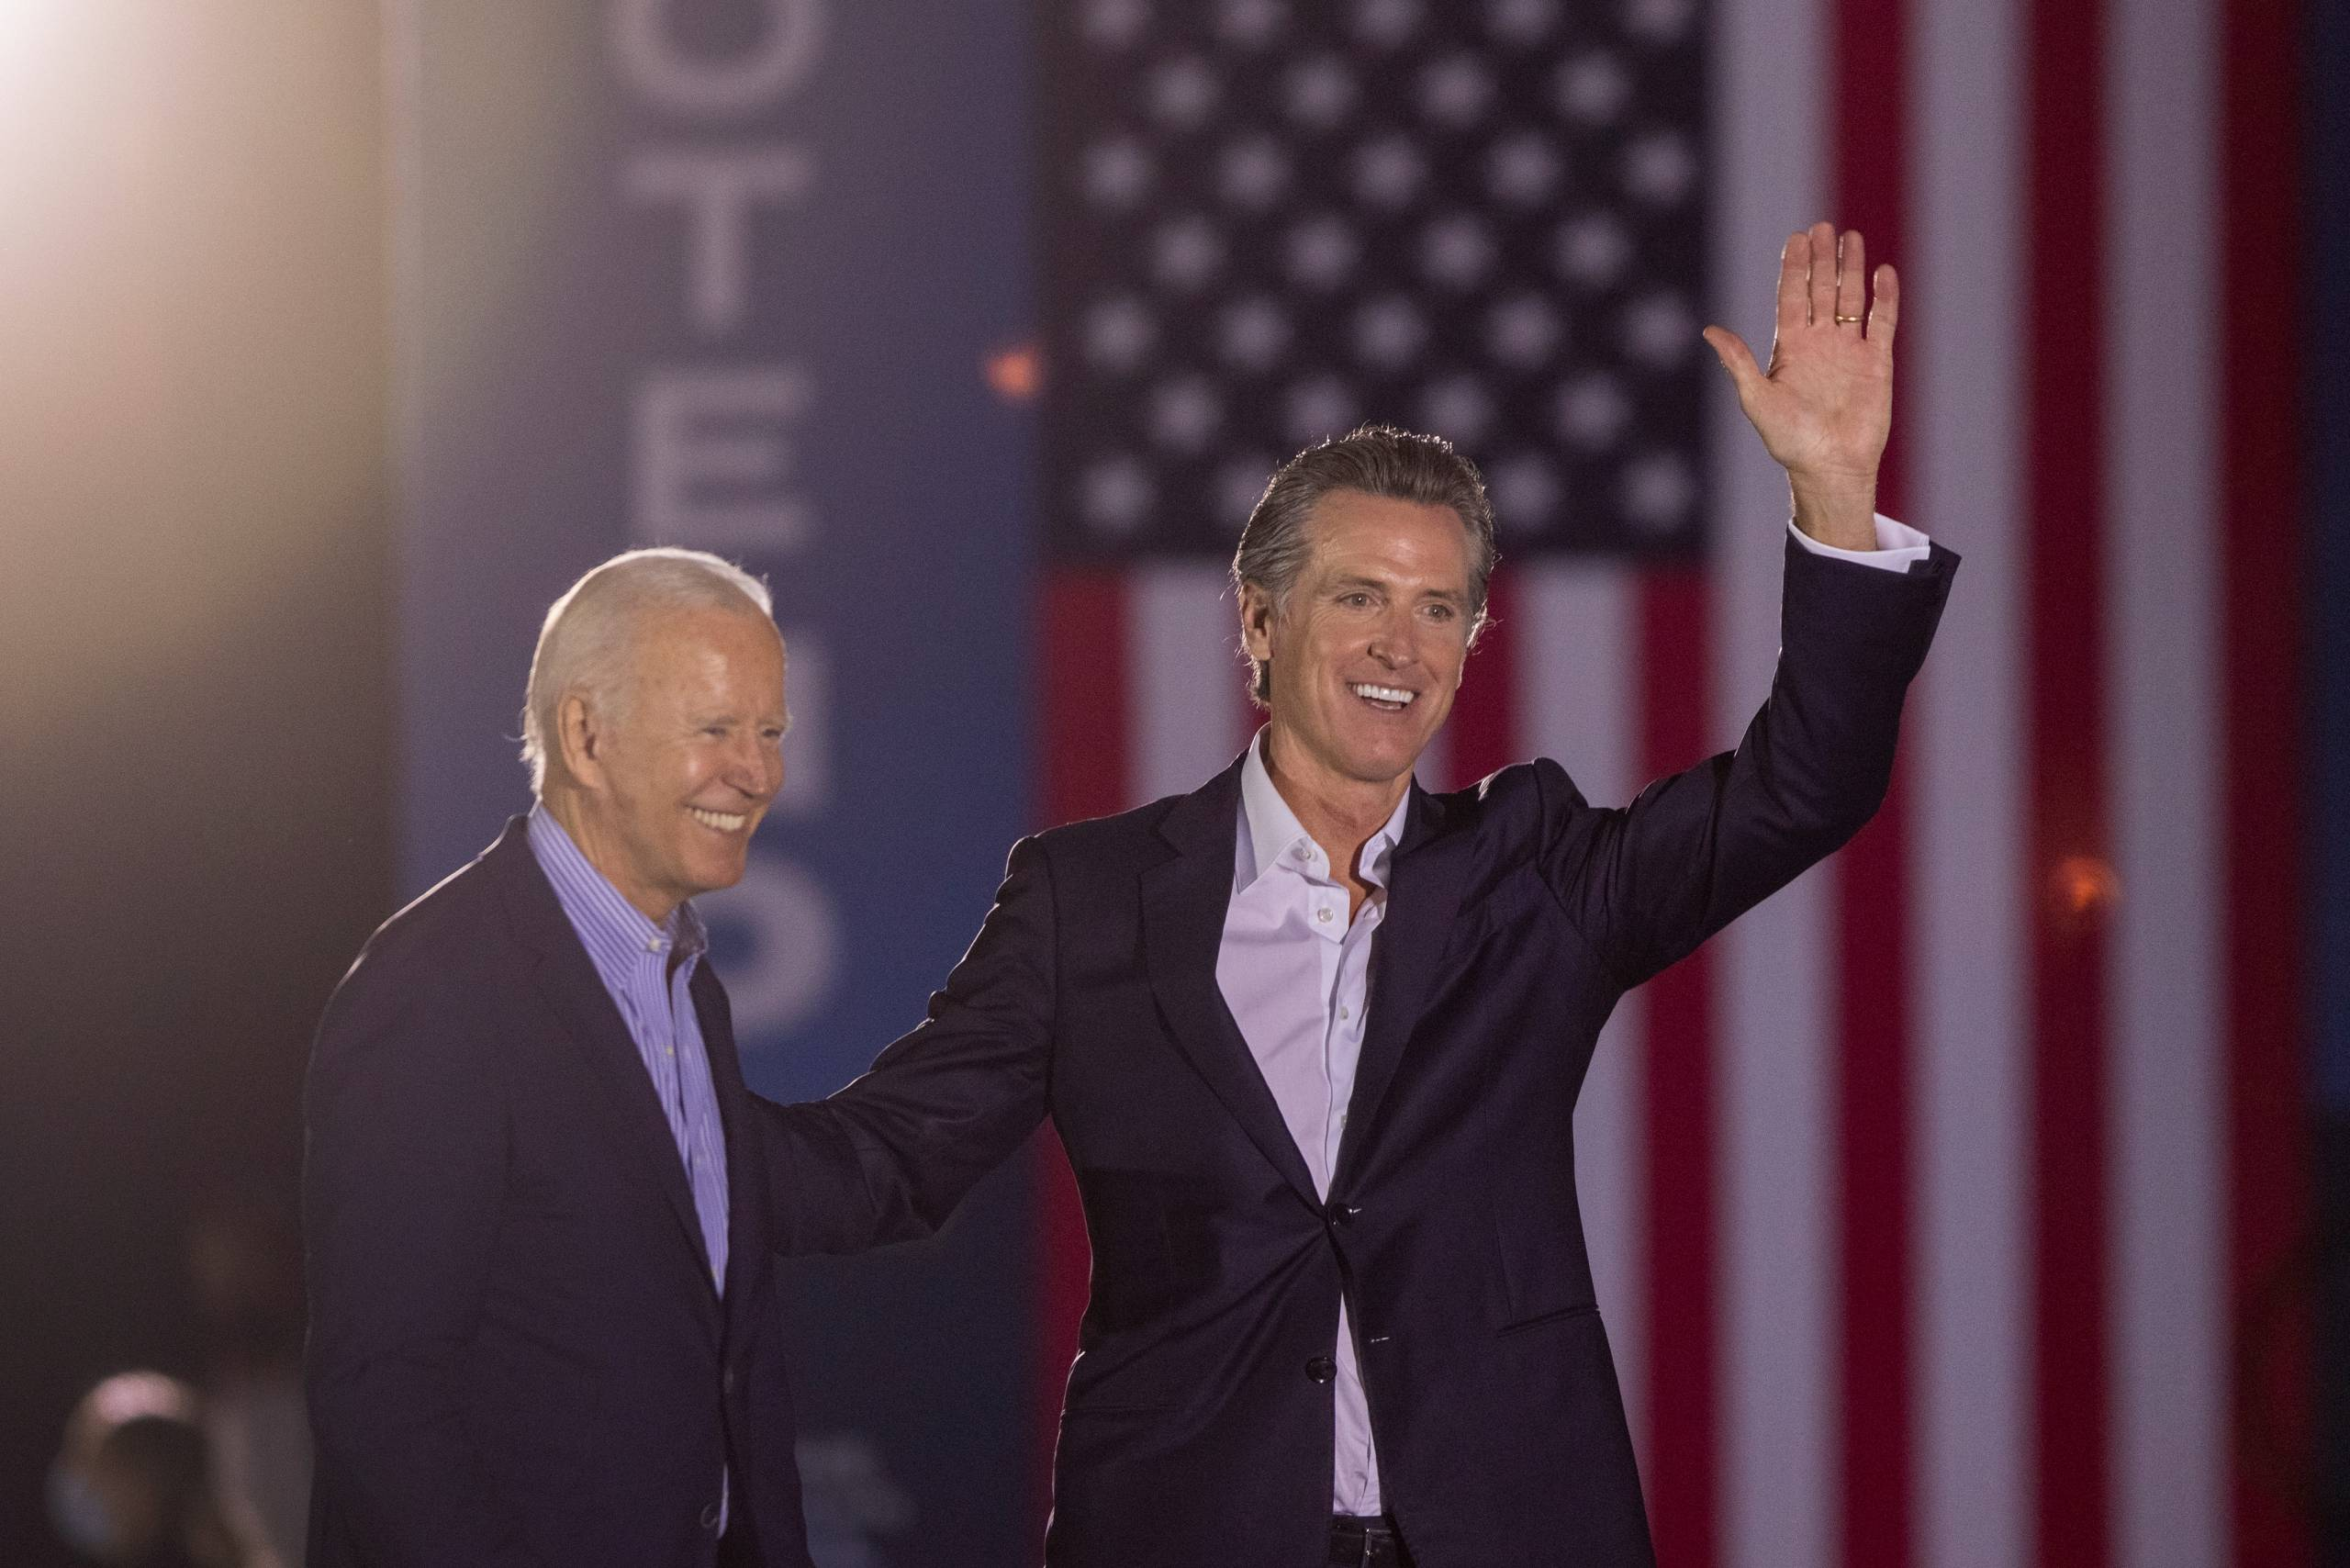 President Joe Biden and Gov. Gavin Newsom, waving, smile as they stand stand before an American flag.